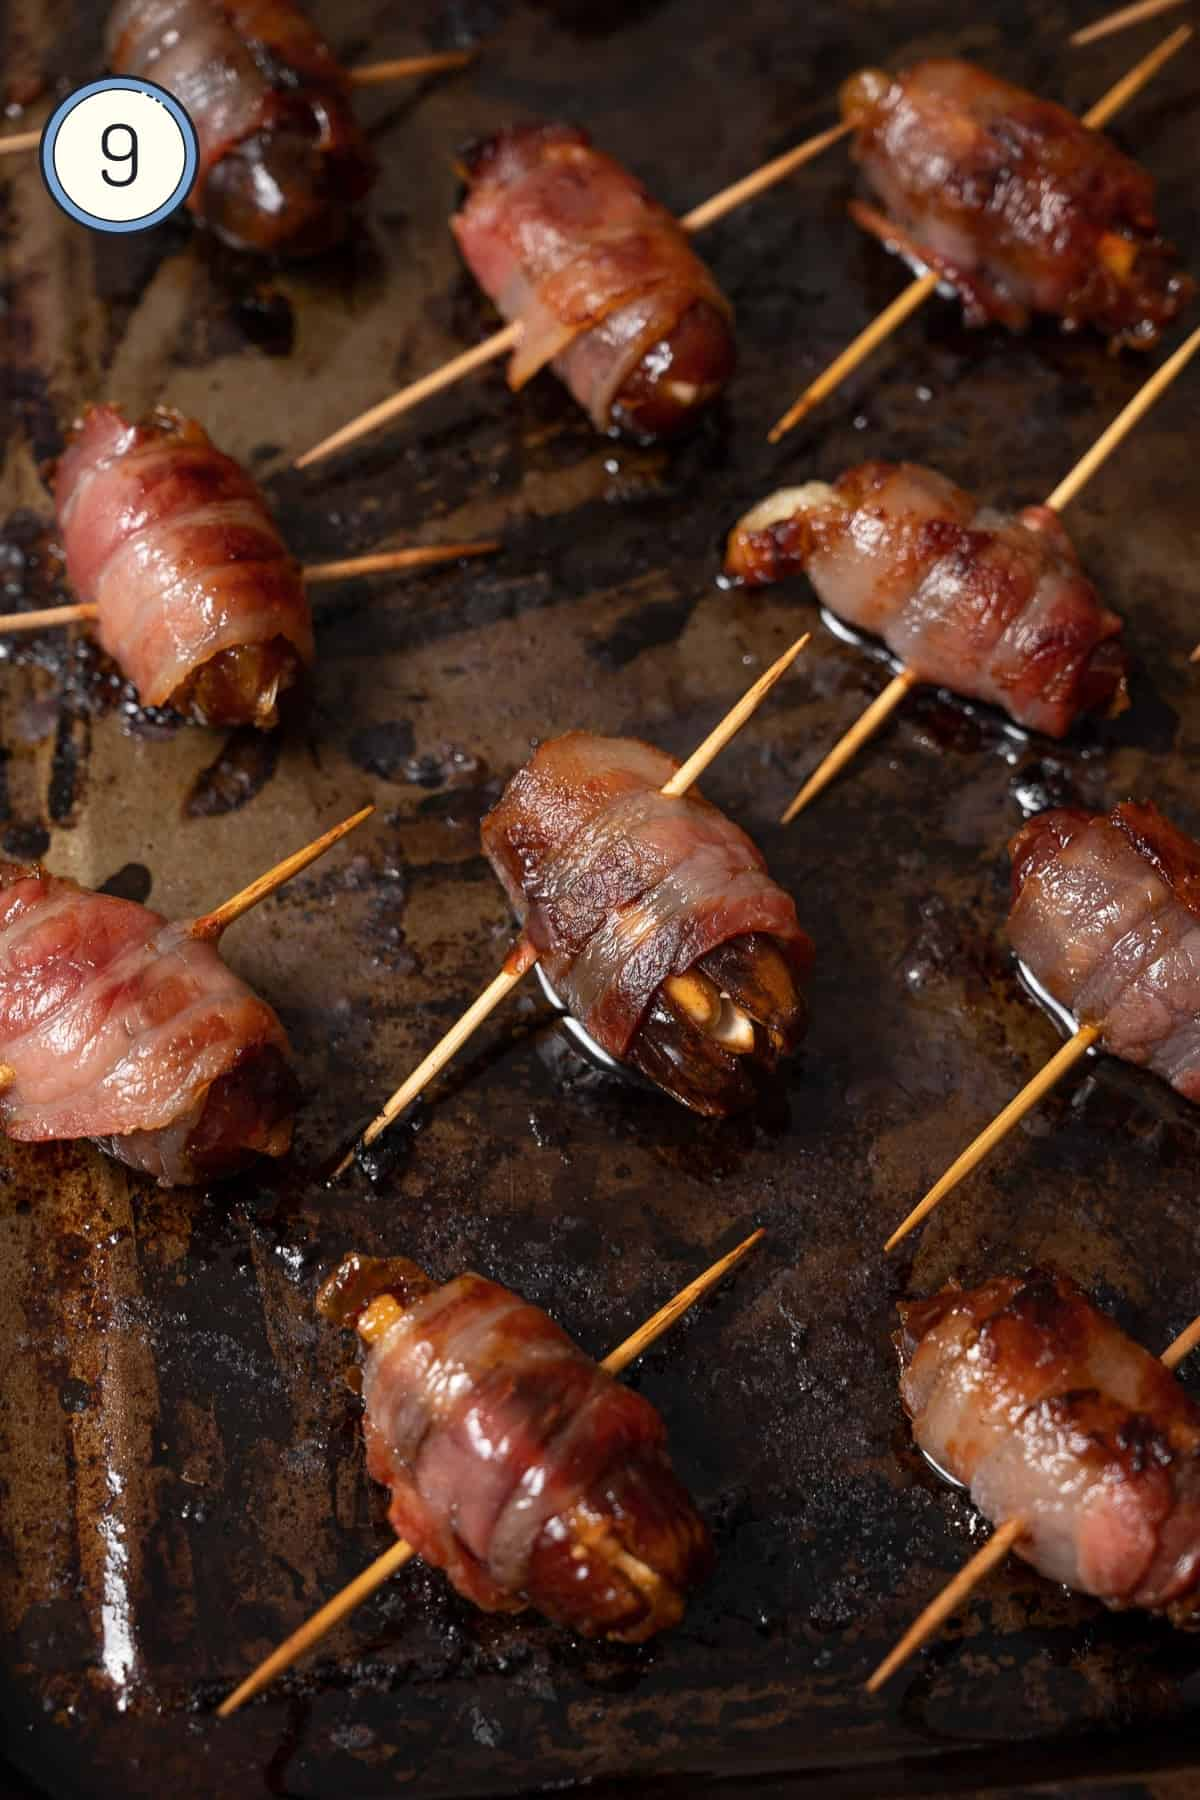 Cooked bacon wrapped dates on a baking tray.